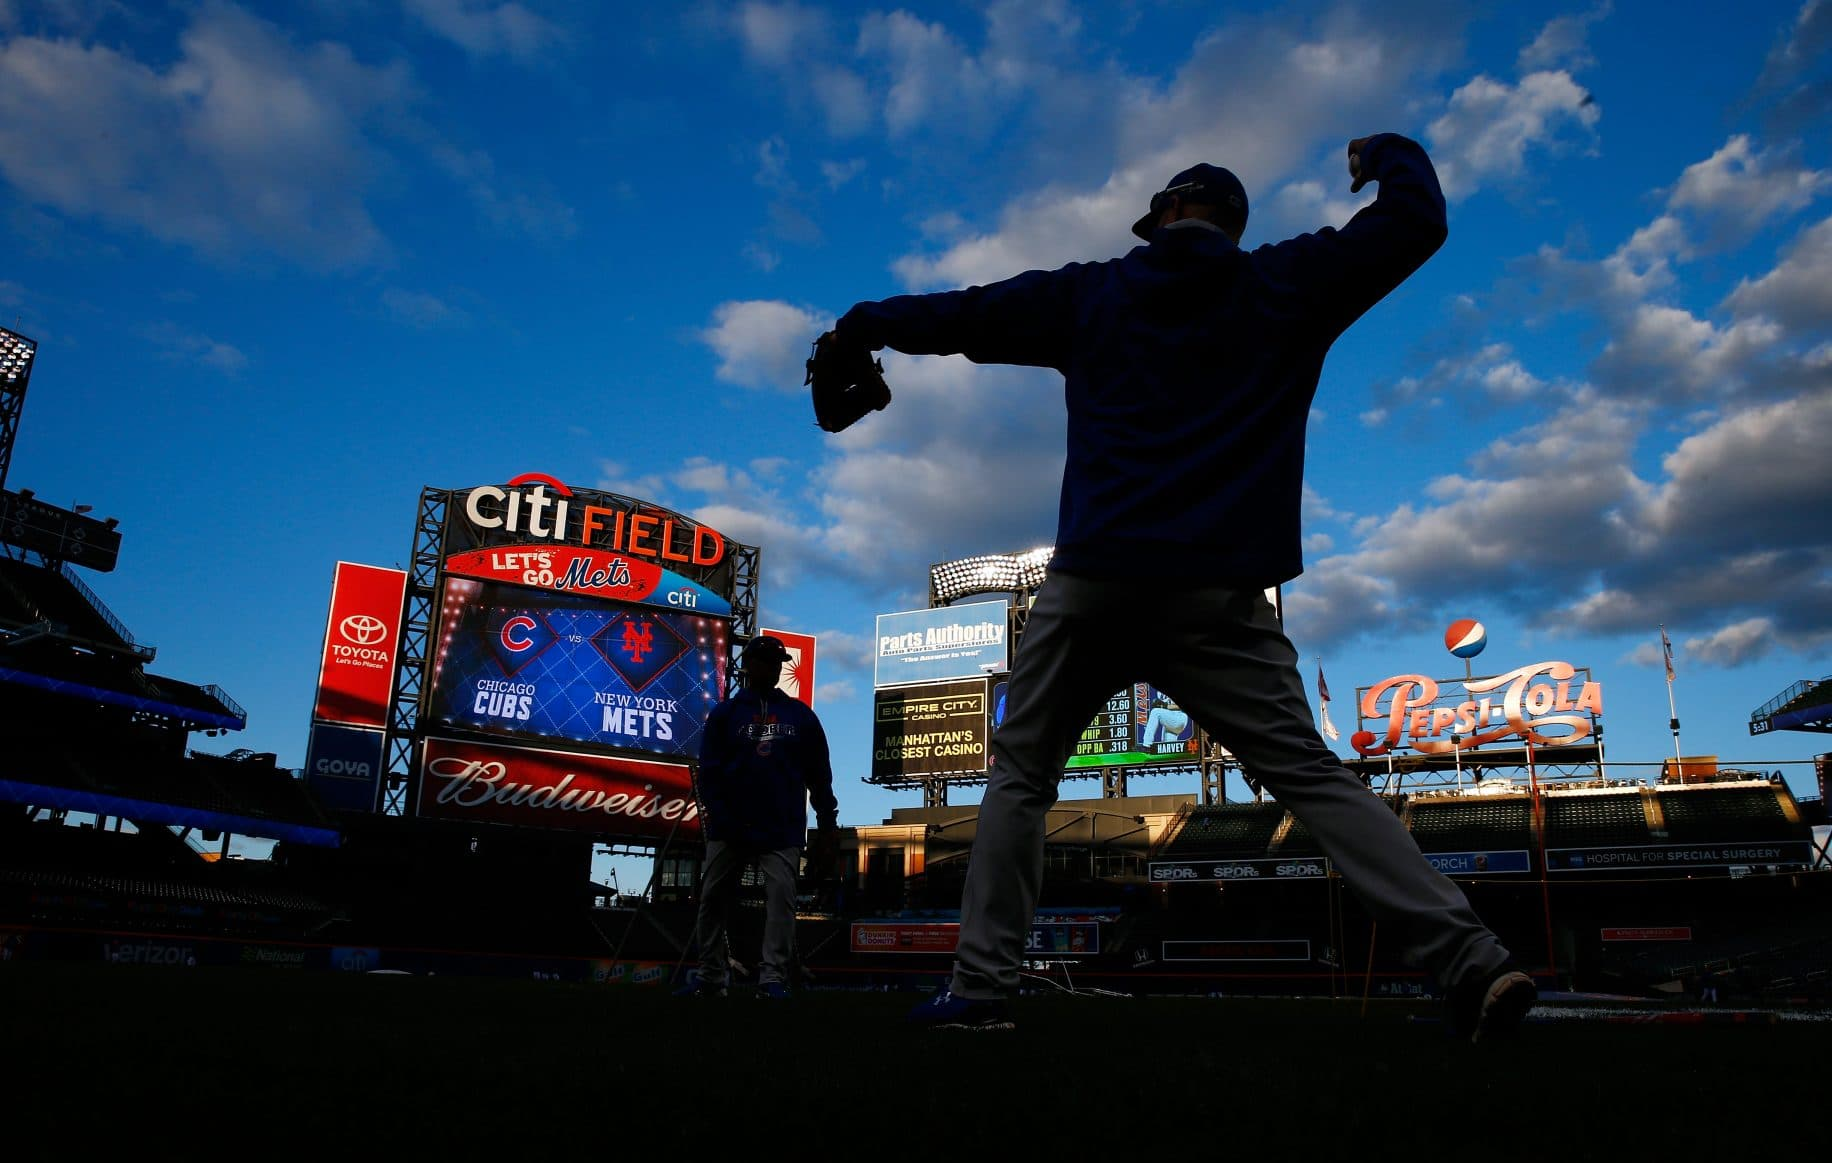 What's the Difference between the Mets and Brewers?